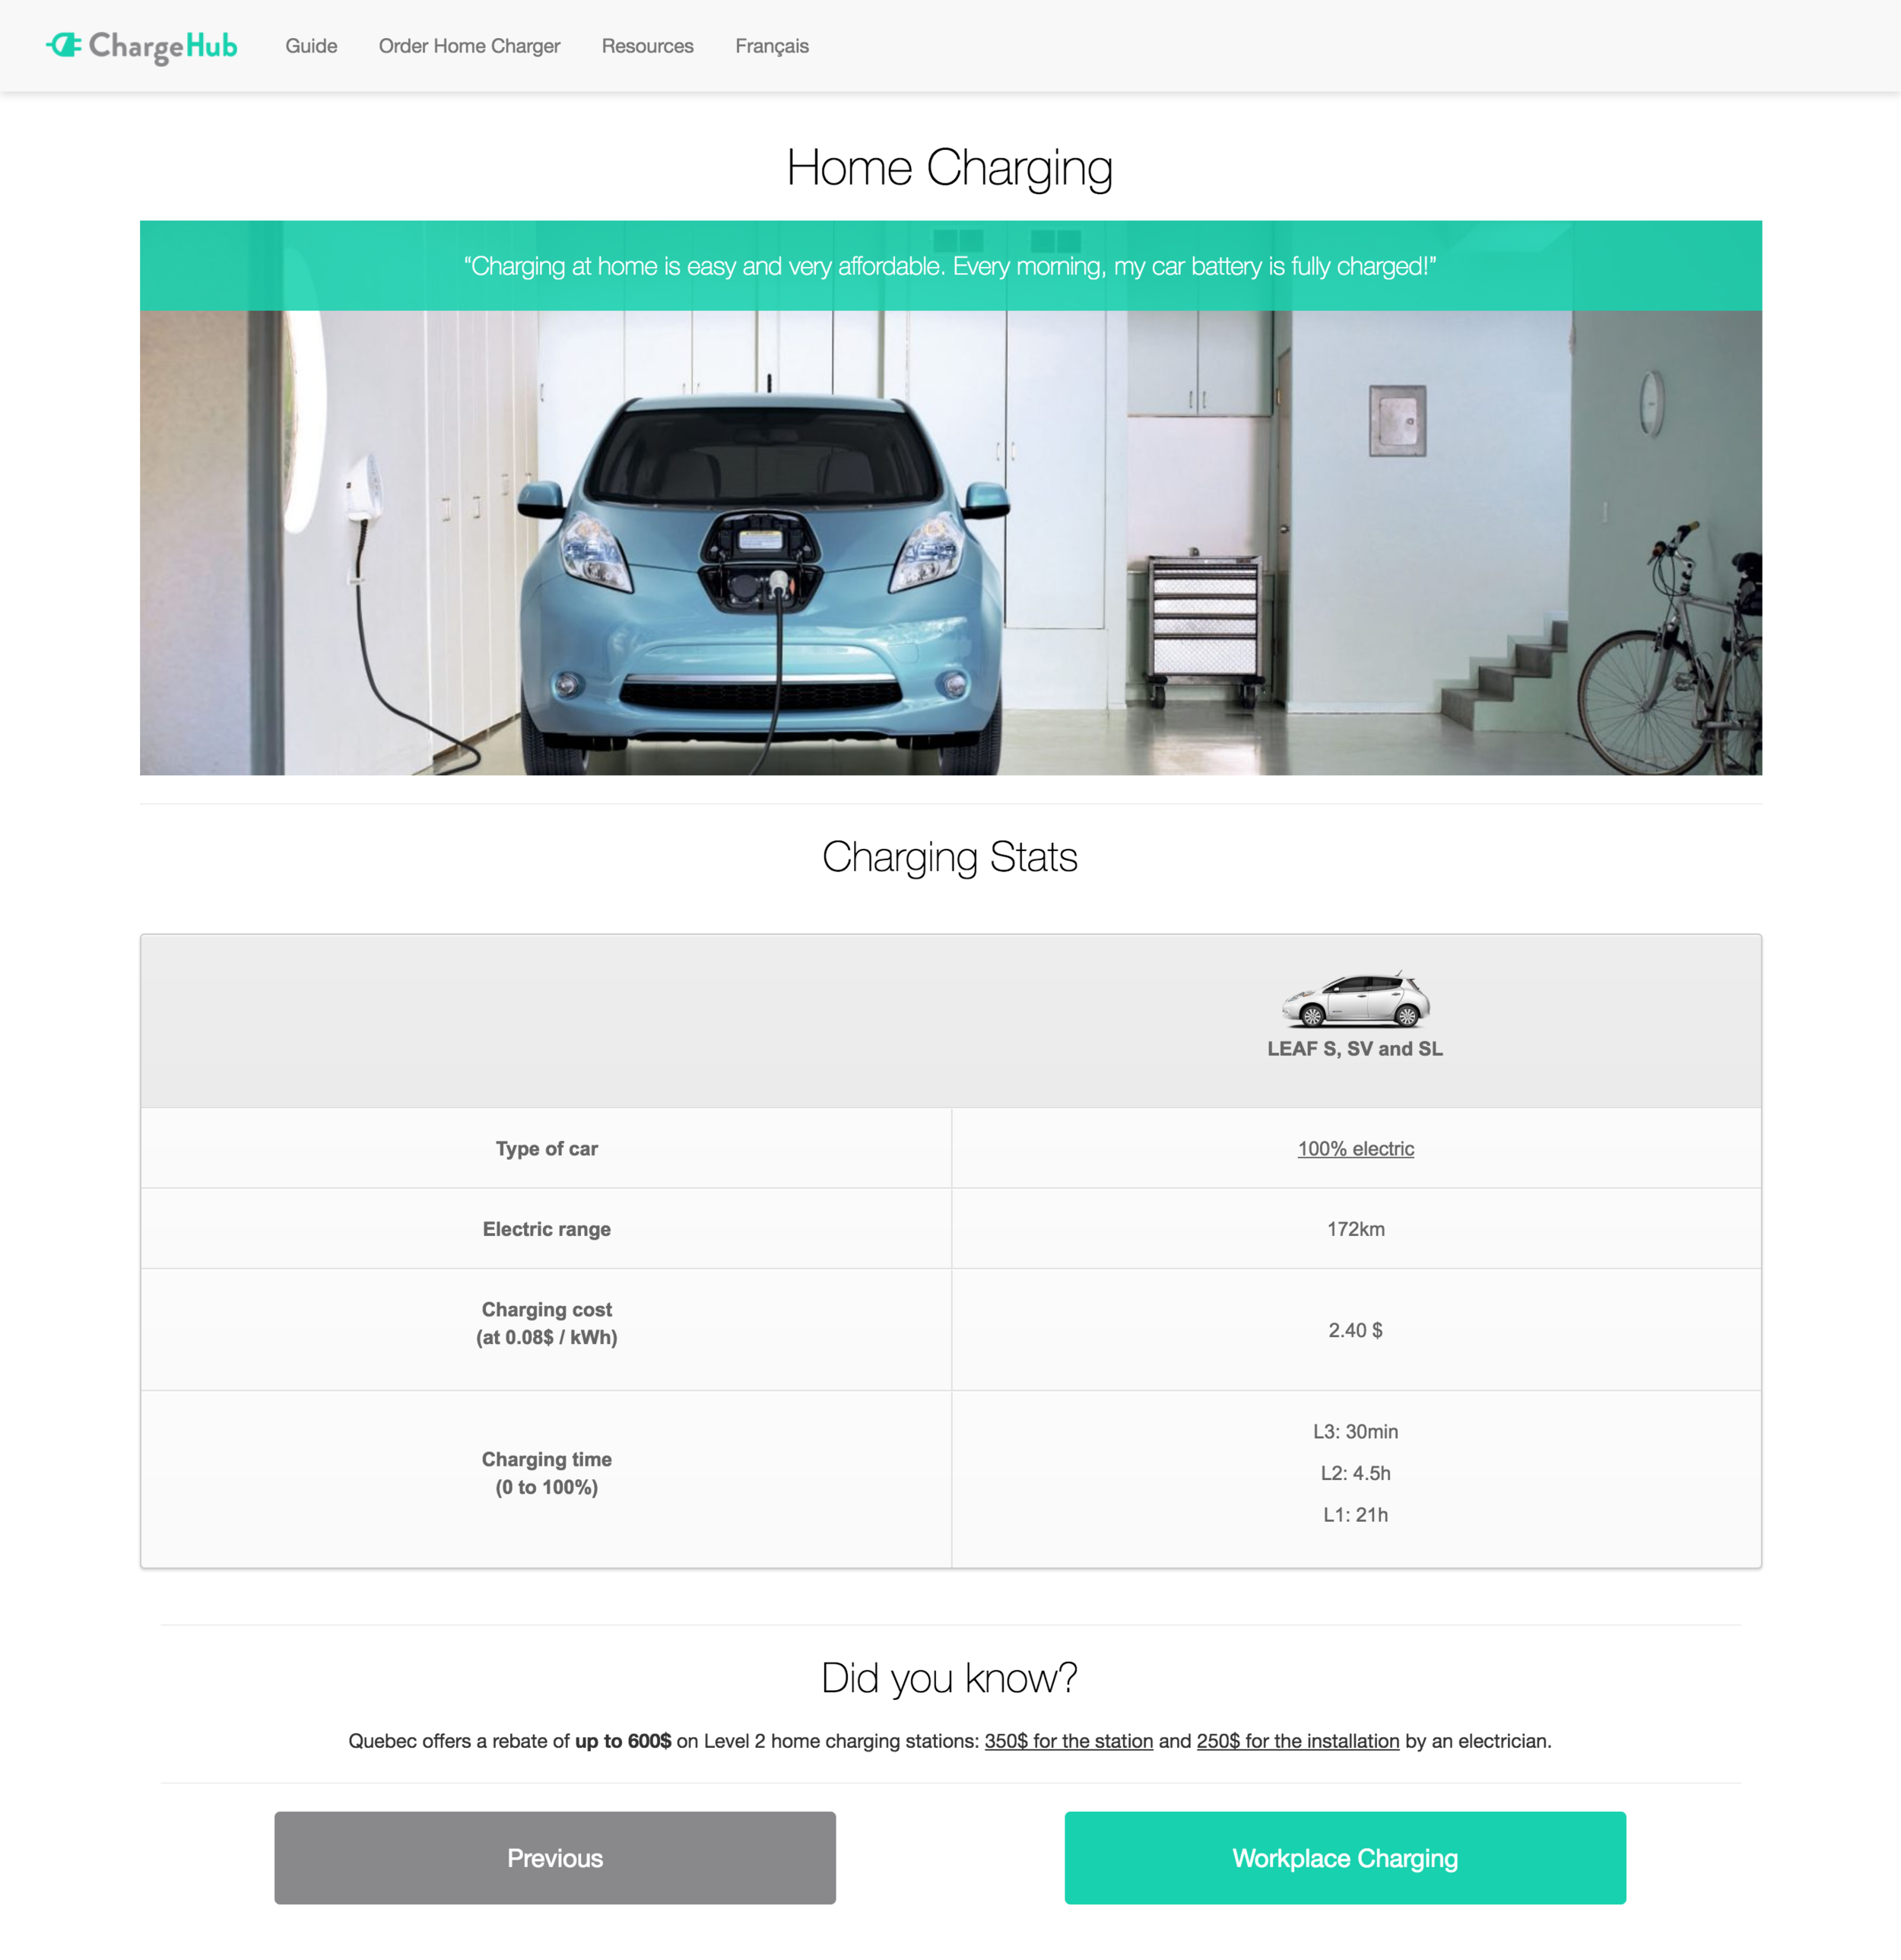 screencapture-nissan-chargehub-en-qc-home-charging-html-1497283945936.png